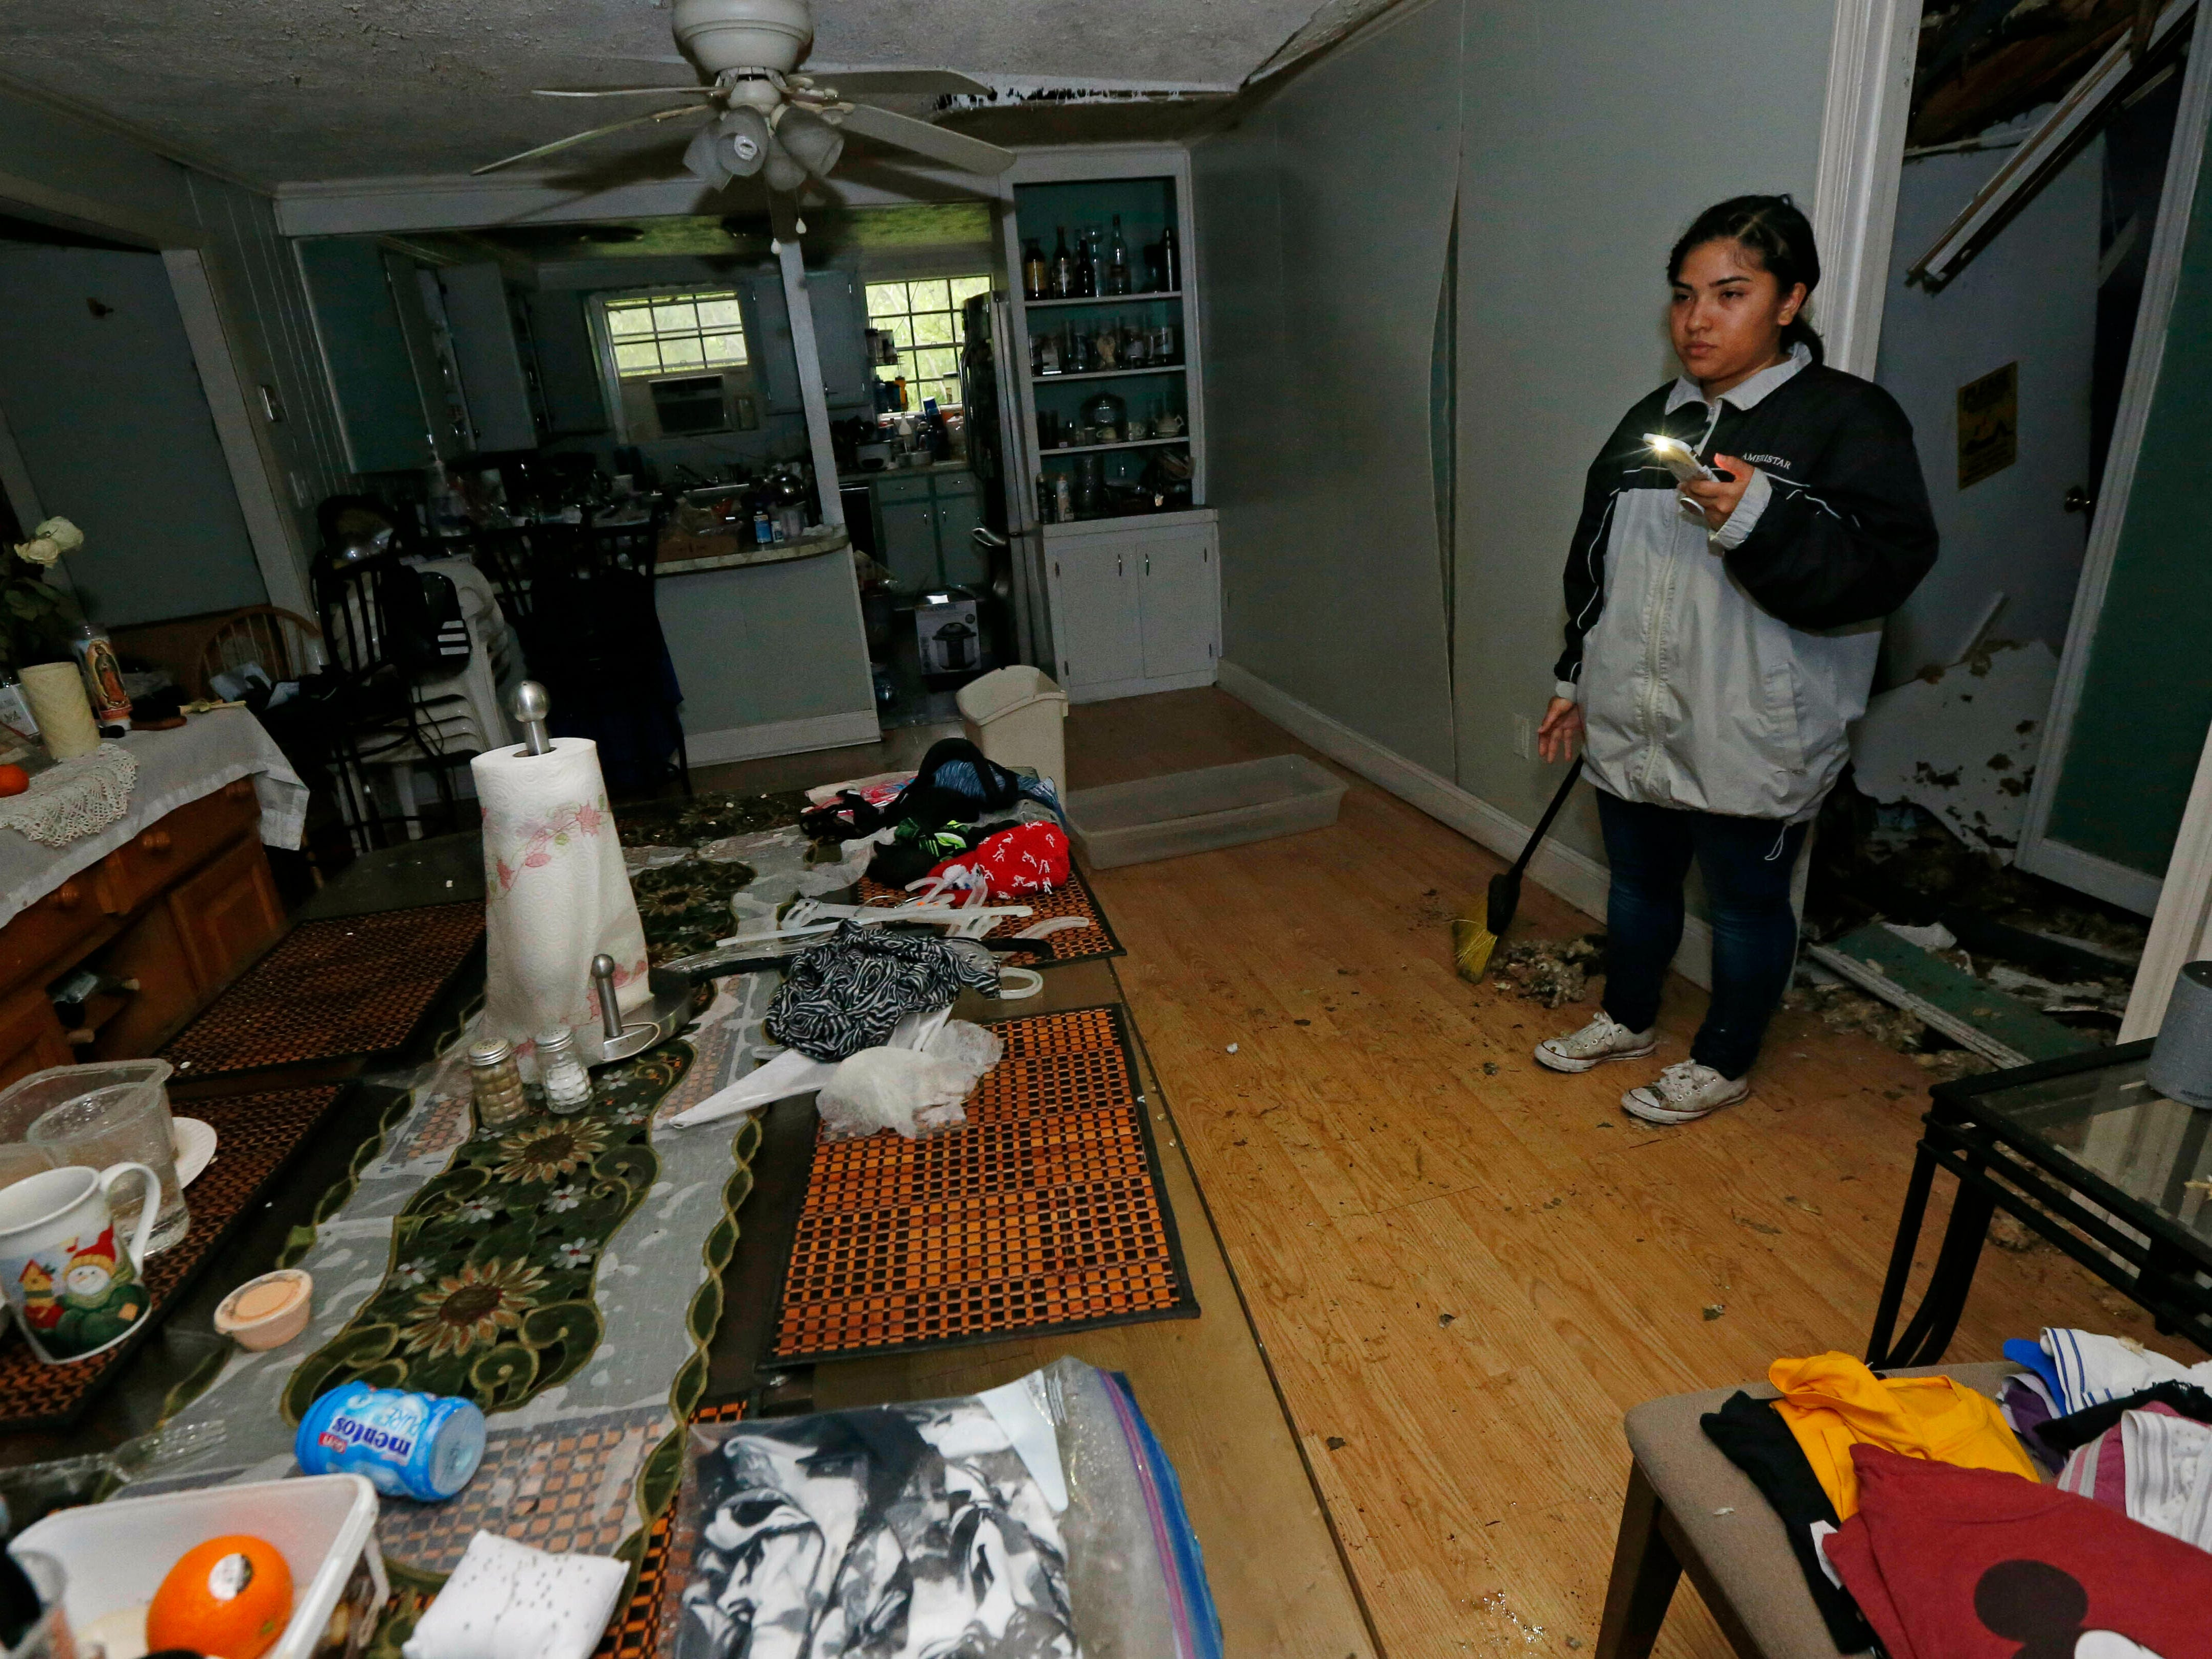 Jacqualynn Qualls calls to her mother in the tree-damaged living room of their Learned, Miss., home, following severe weather that hit the small community, Thursday, April 18, 2019. Several homes were damaged by fallen trees in the tree lined community. Strong storms again roared across the South on Thursday, topping trees and leaving more than 100,000 people without power across Mississippi, Louisiana and Texas.